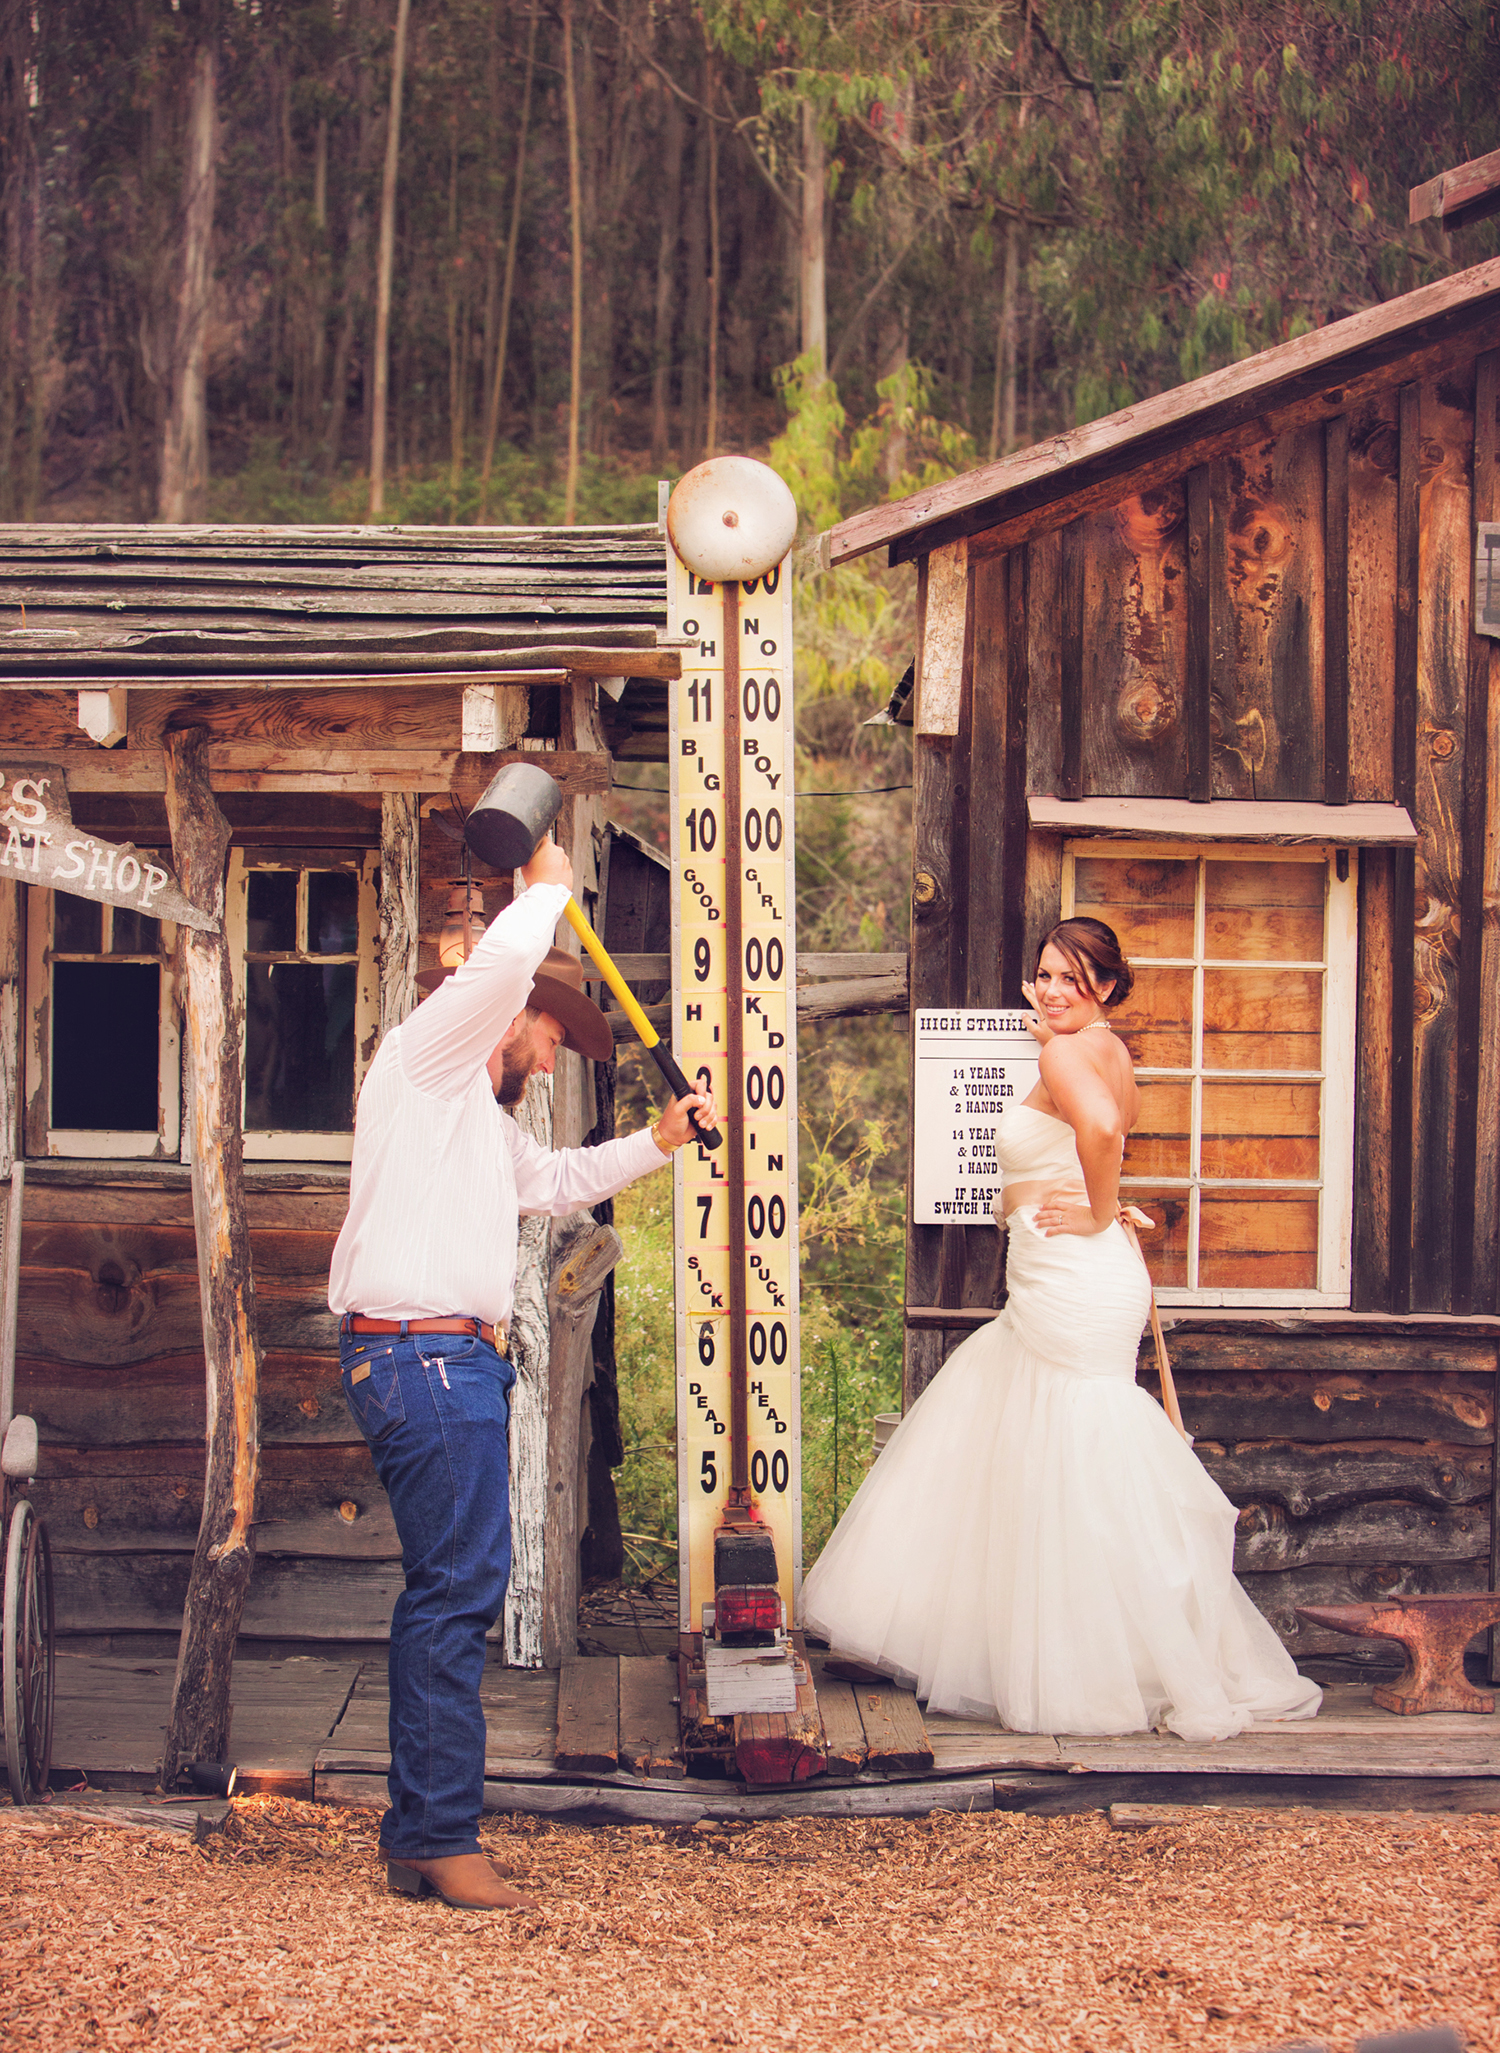 Dena_Rooney_Wedding_Photographer_Long_Branch_Farms_053.jpg